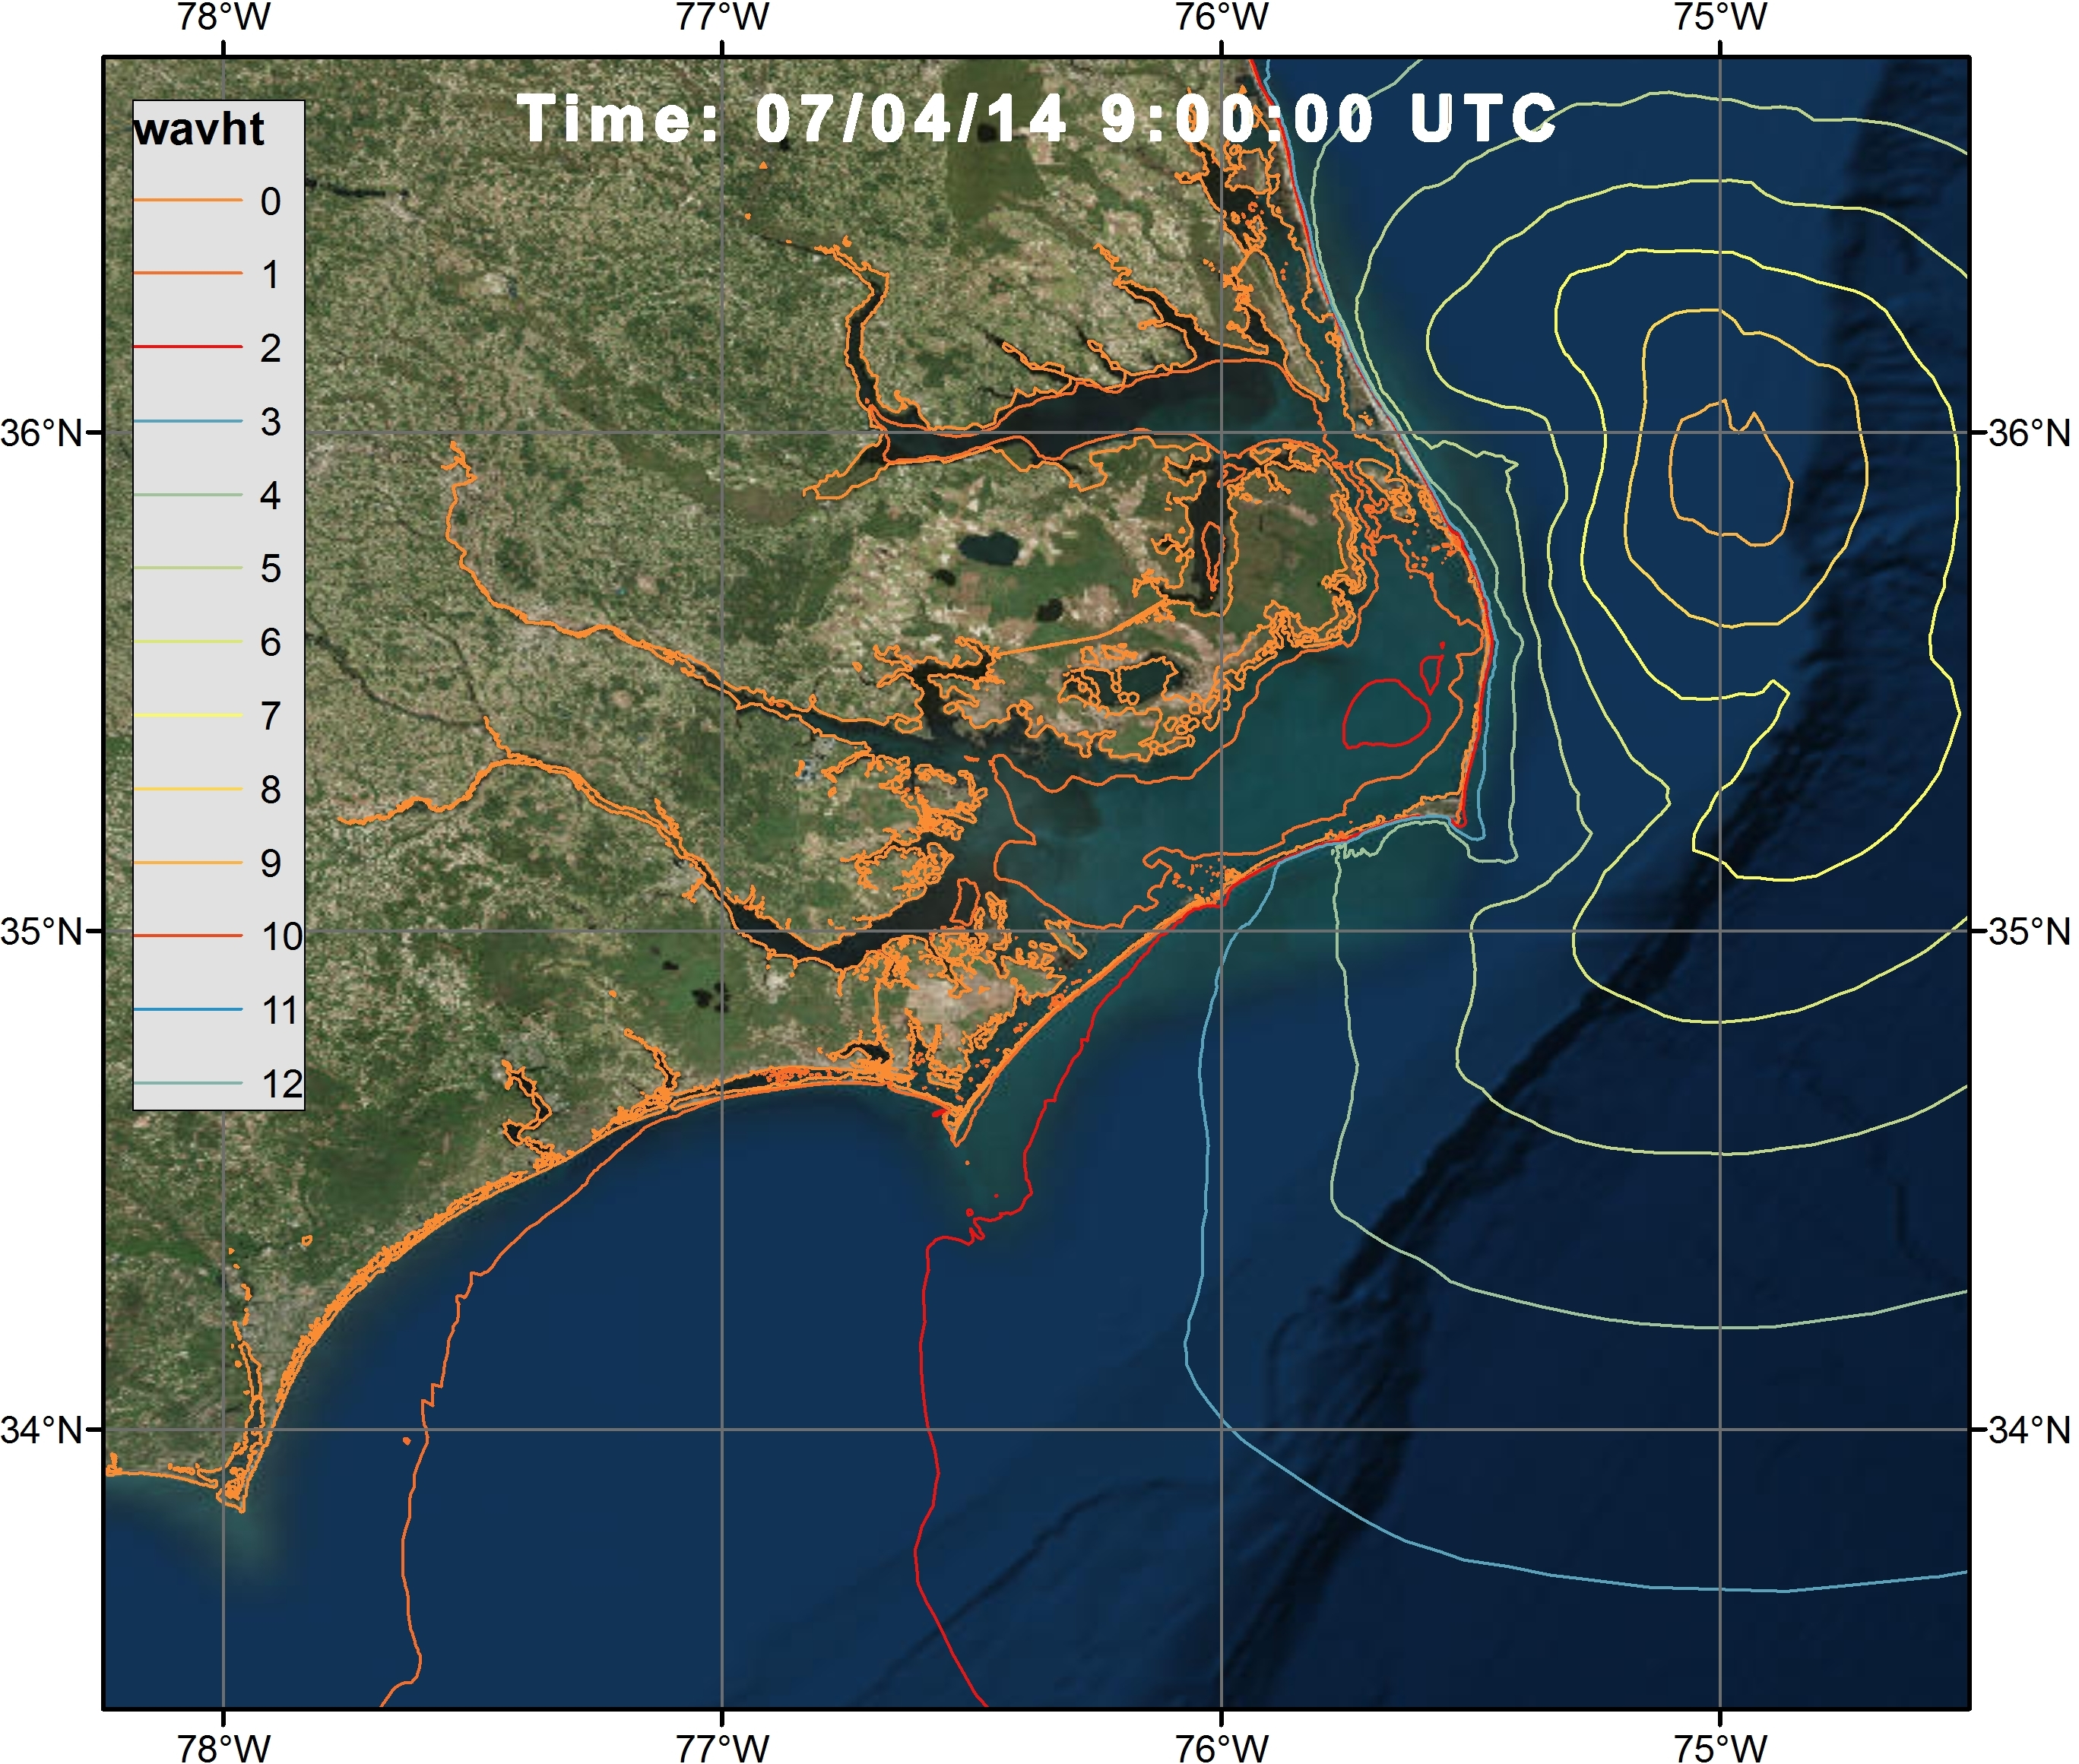 Example 3c Visualization of the significant wave heights during Hurricane Arthur Advisory 12 along the NC coast at 07/04/14 0900 UTC via a time varying polyline shapefile with ArcGIS satellite Imagery